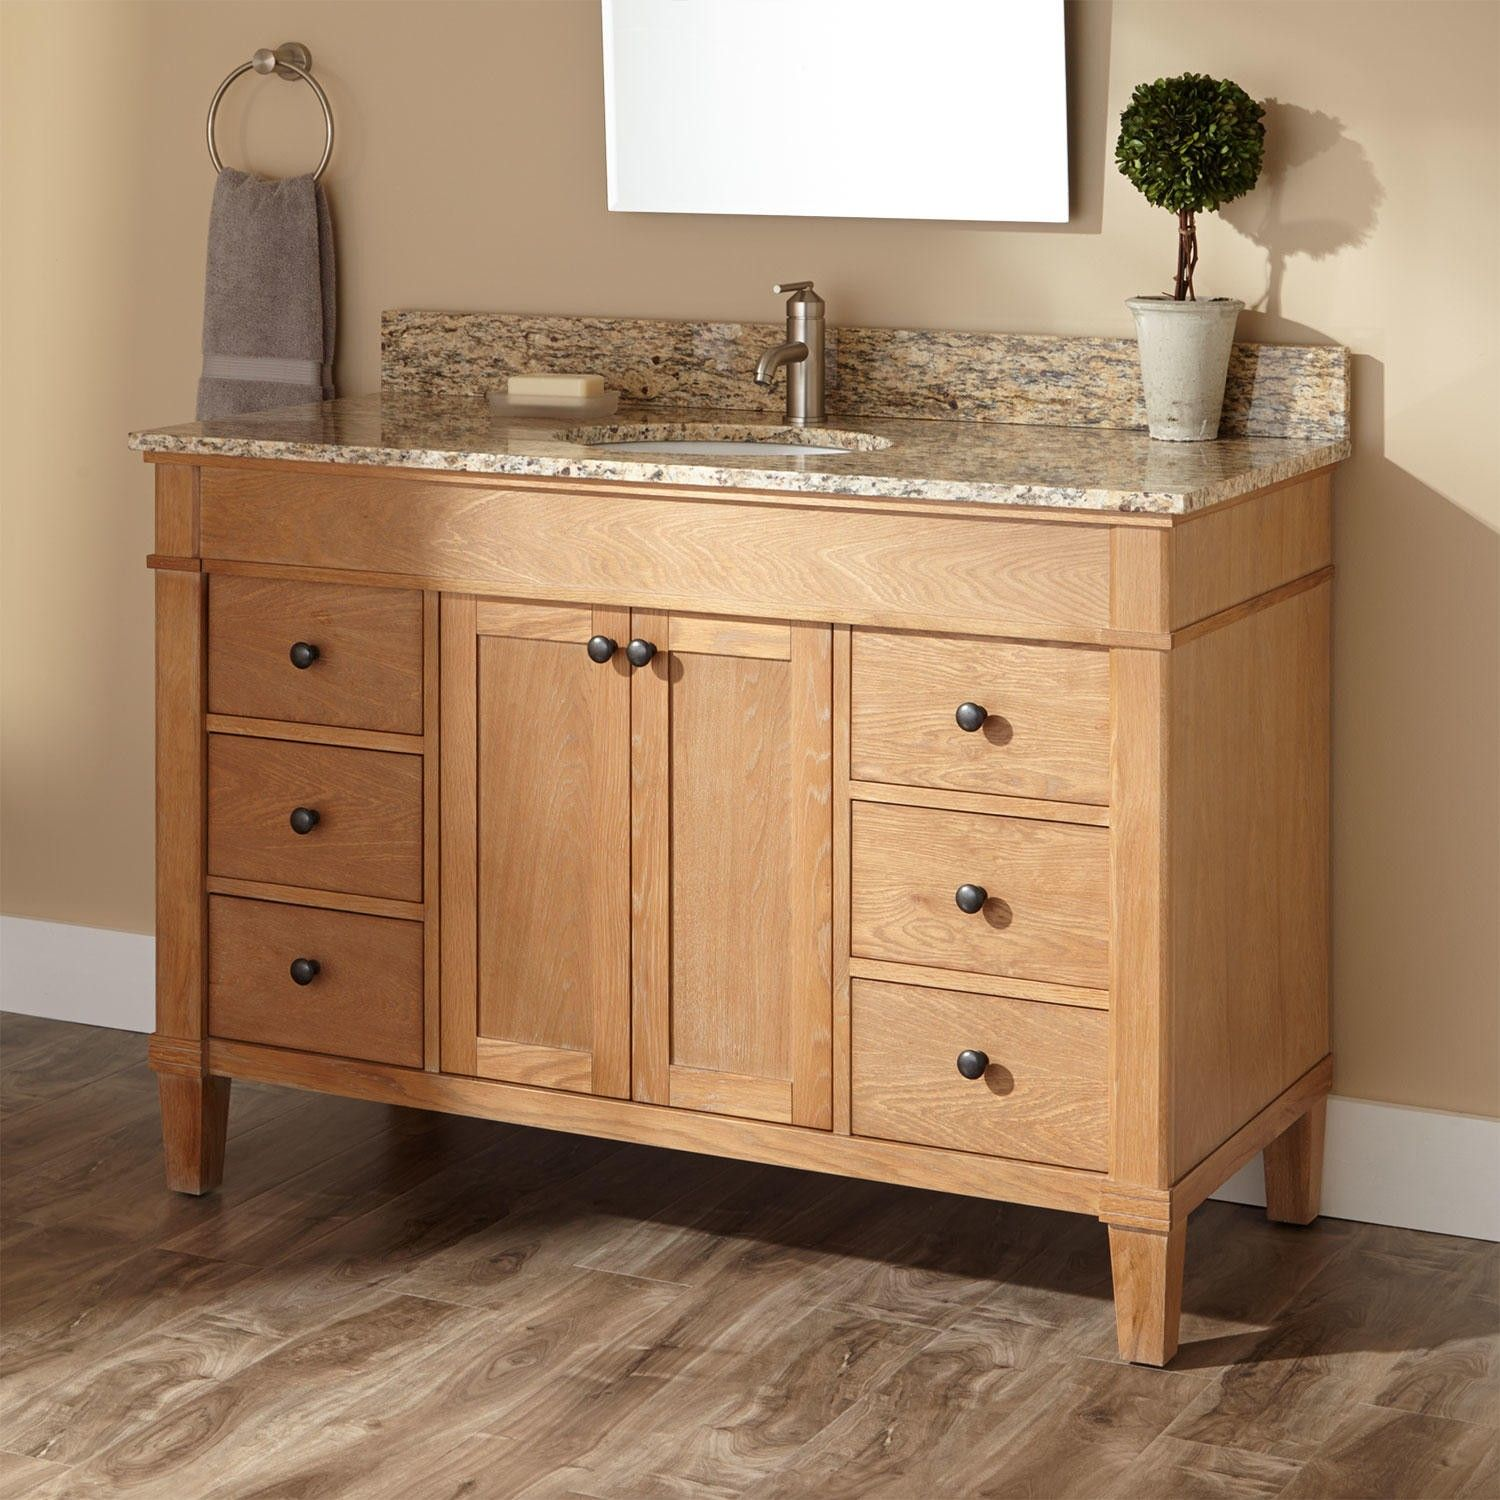 Marilla Vanity For Undermount Sink Vanities Sinks And Marbles